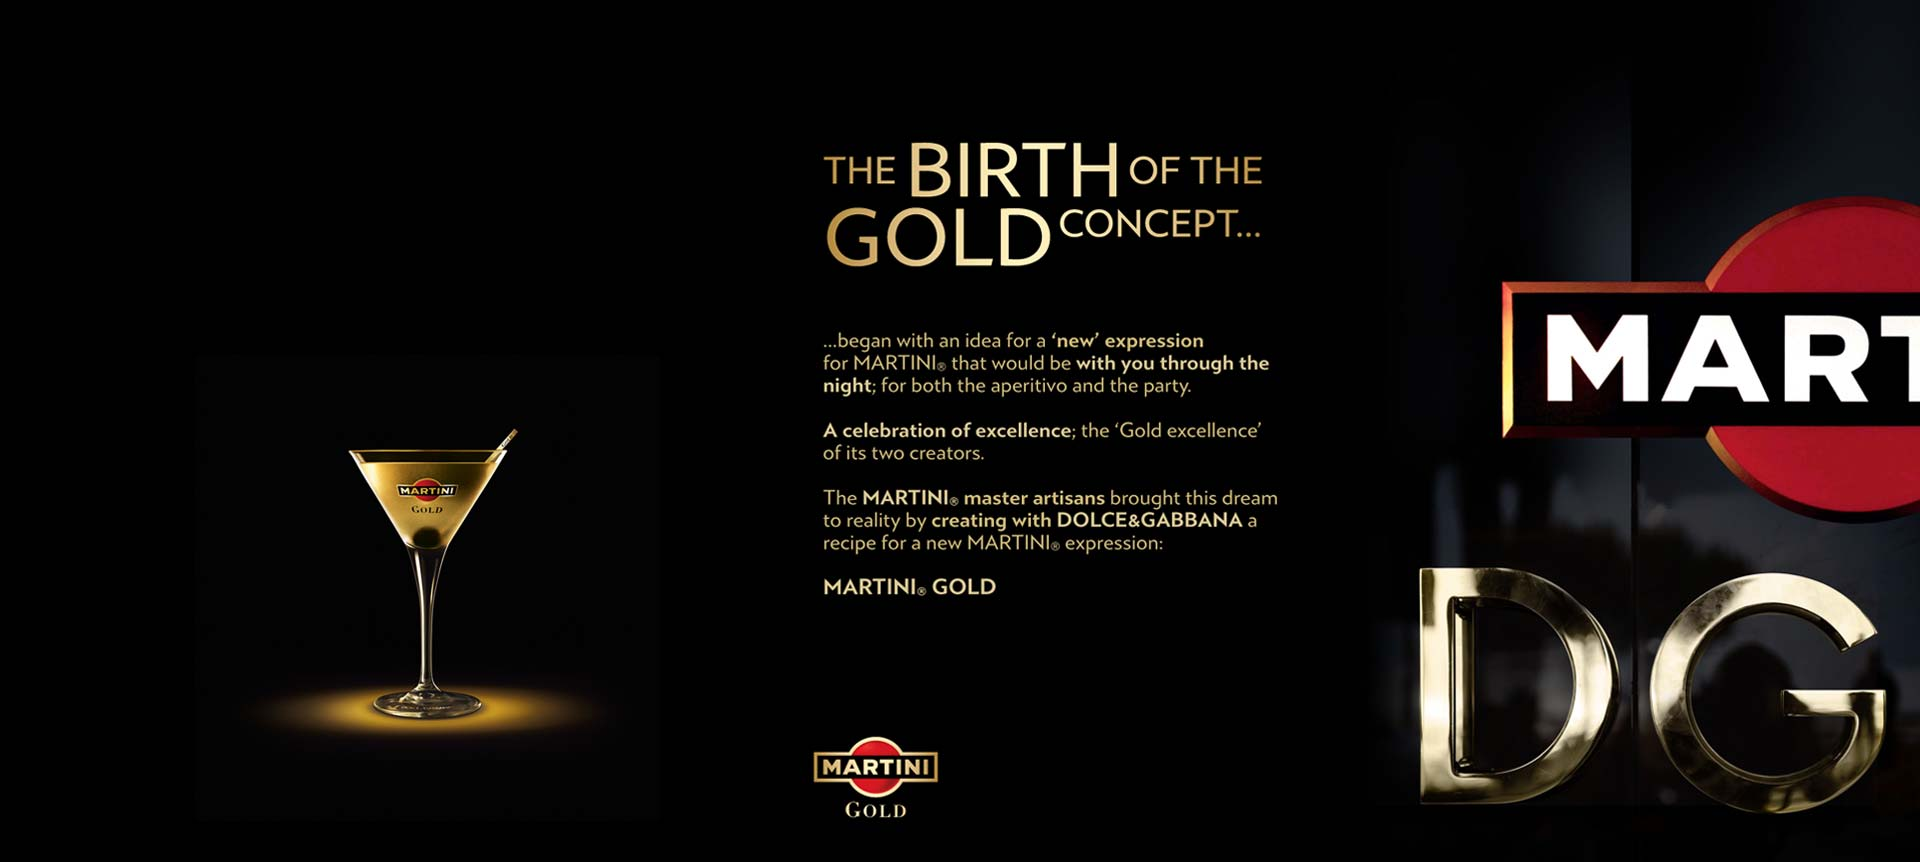 HQ Martini Gold Wallpapers | File 78.88Kb